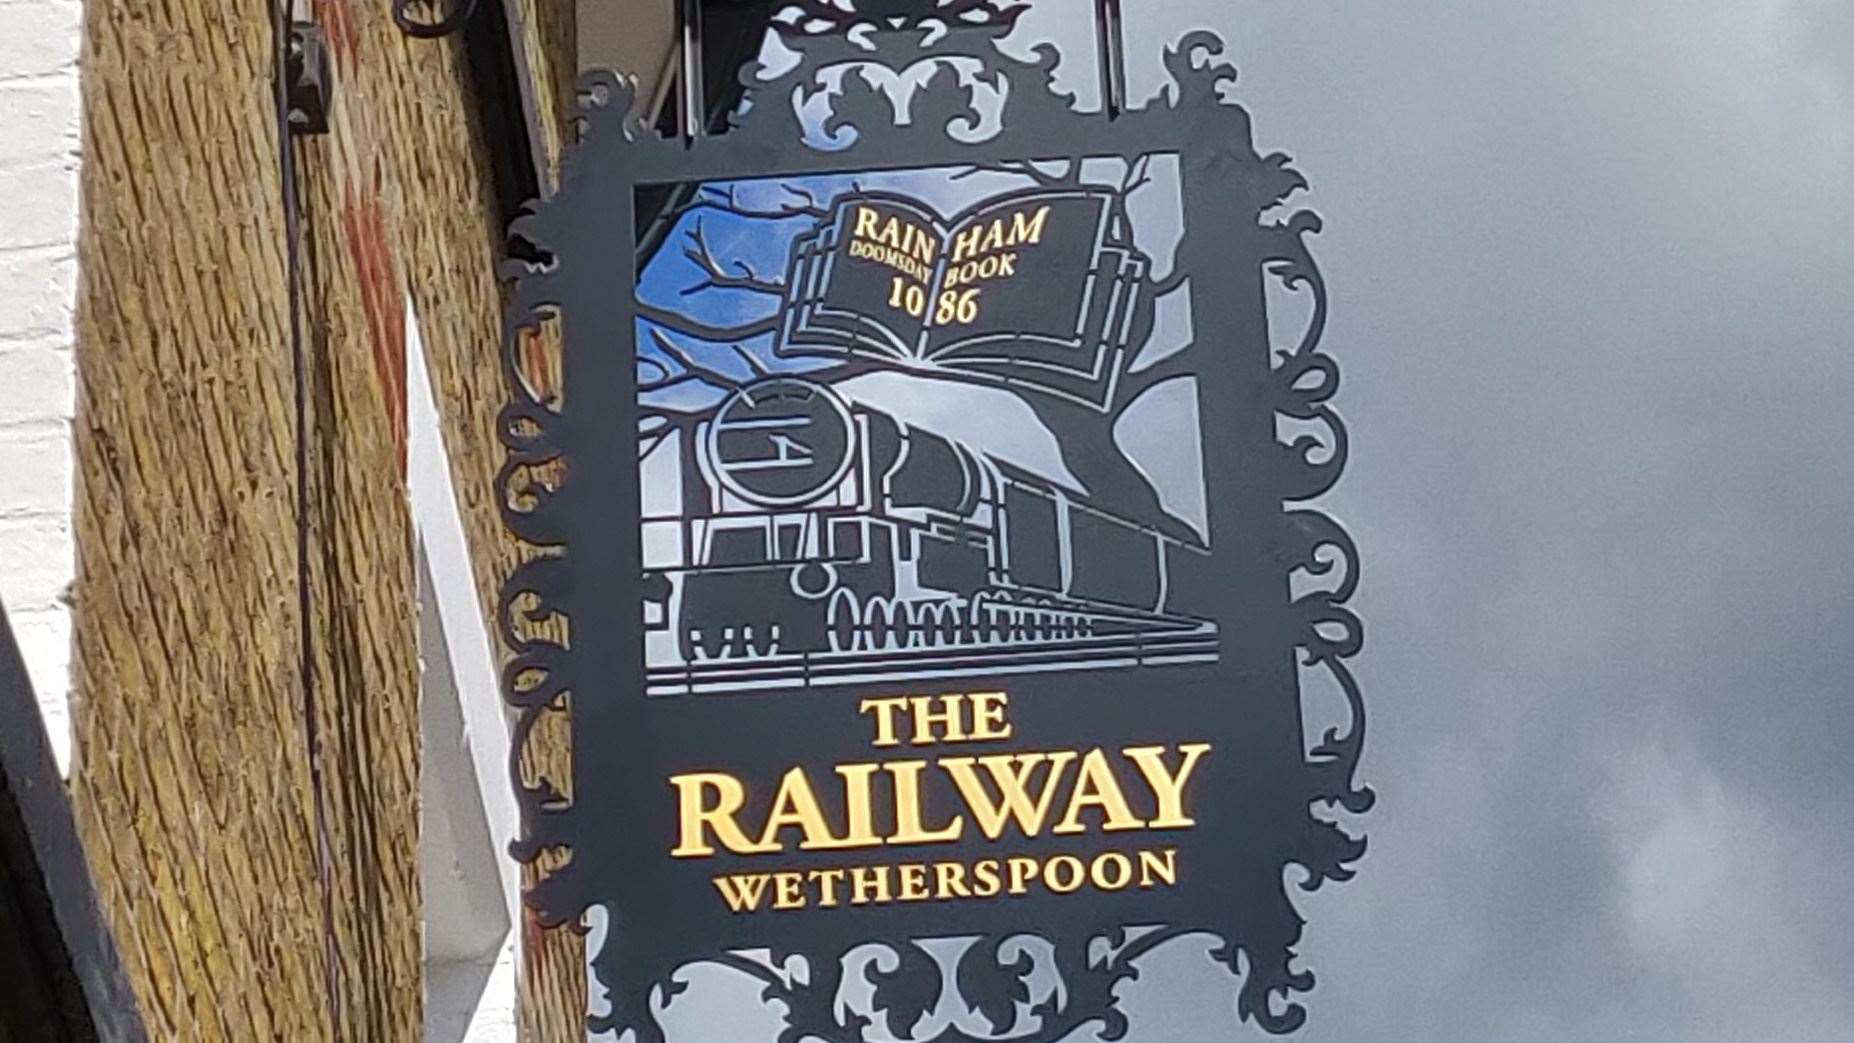 There are a couple of errors in the sign for the new Railway Pub in Rainham